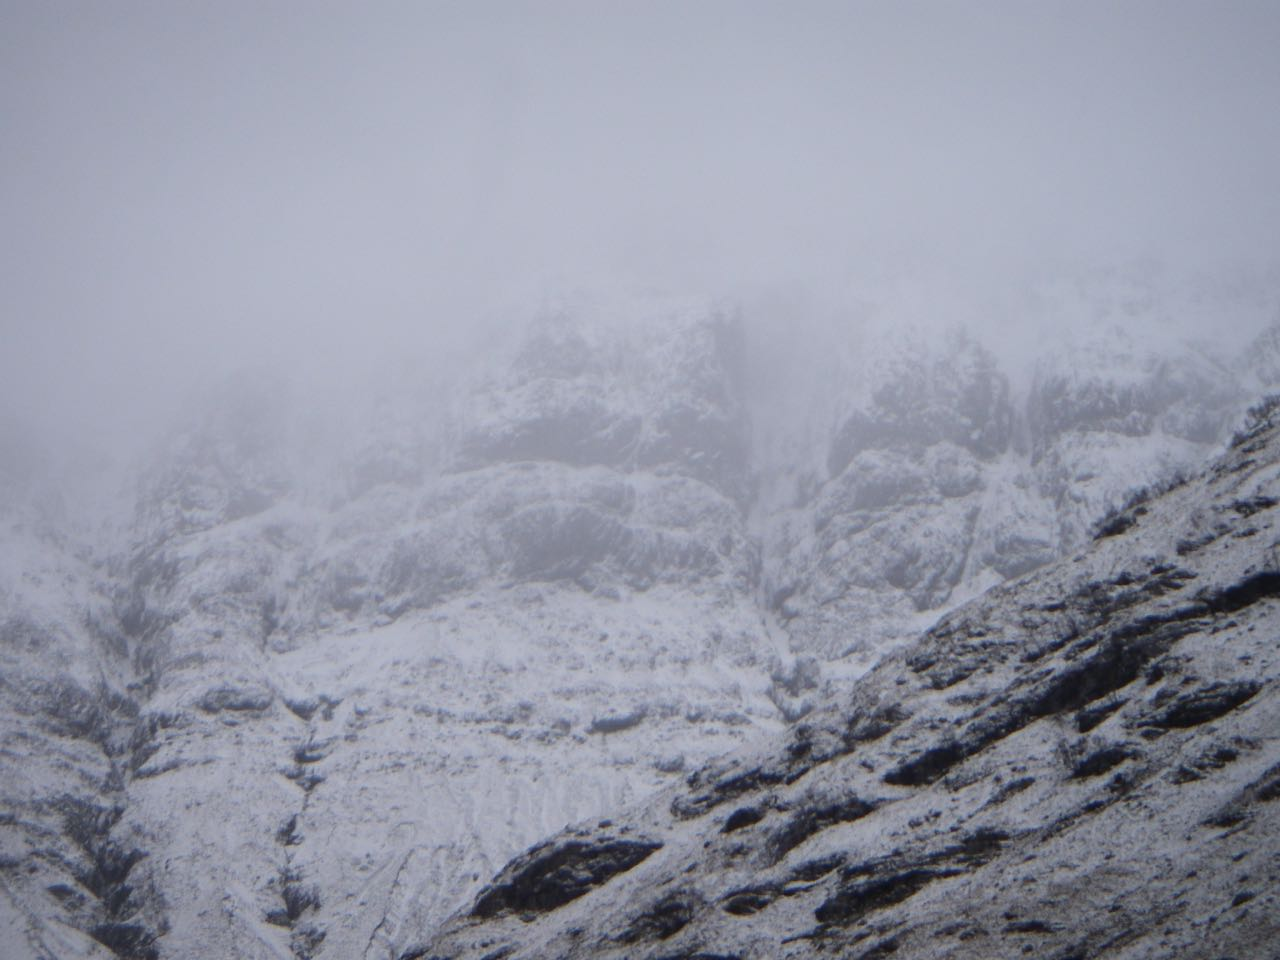 The West face of Aonach Dubh - overcast by mid-day.